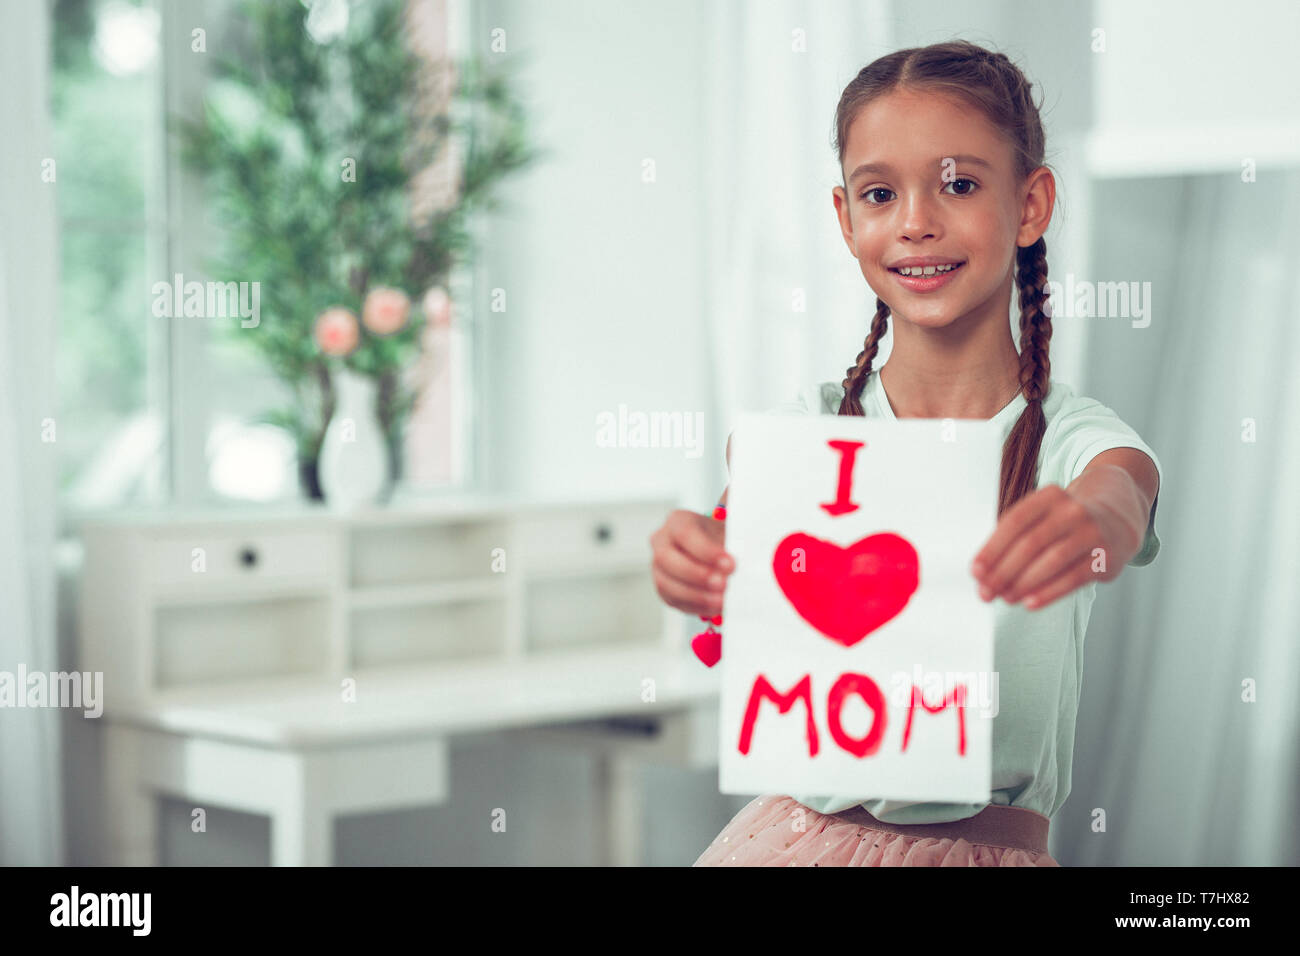 Nice-looking Afro-American girl showing picture with I love mom sign. - Stock Image